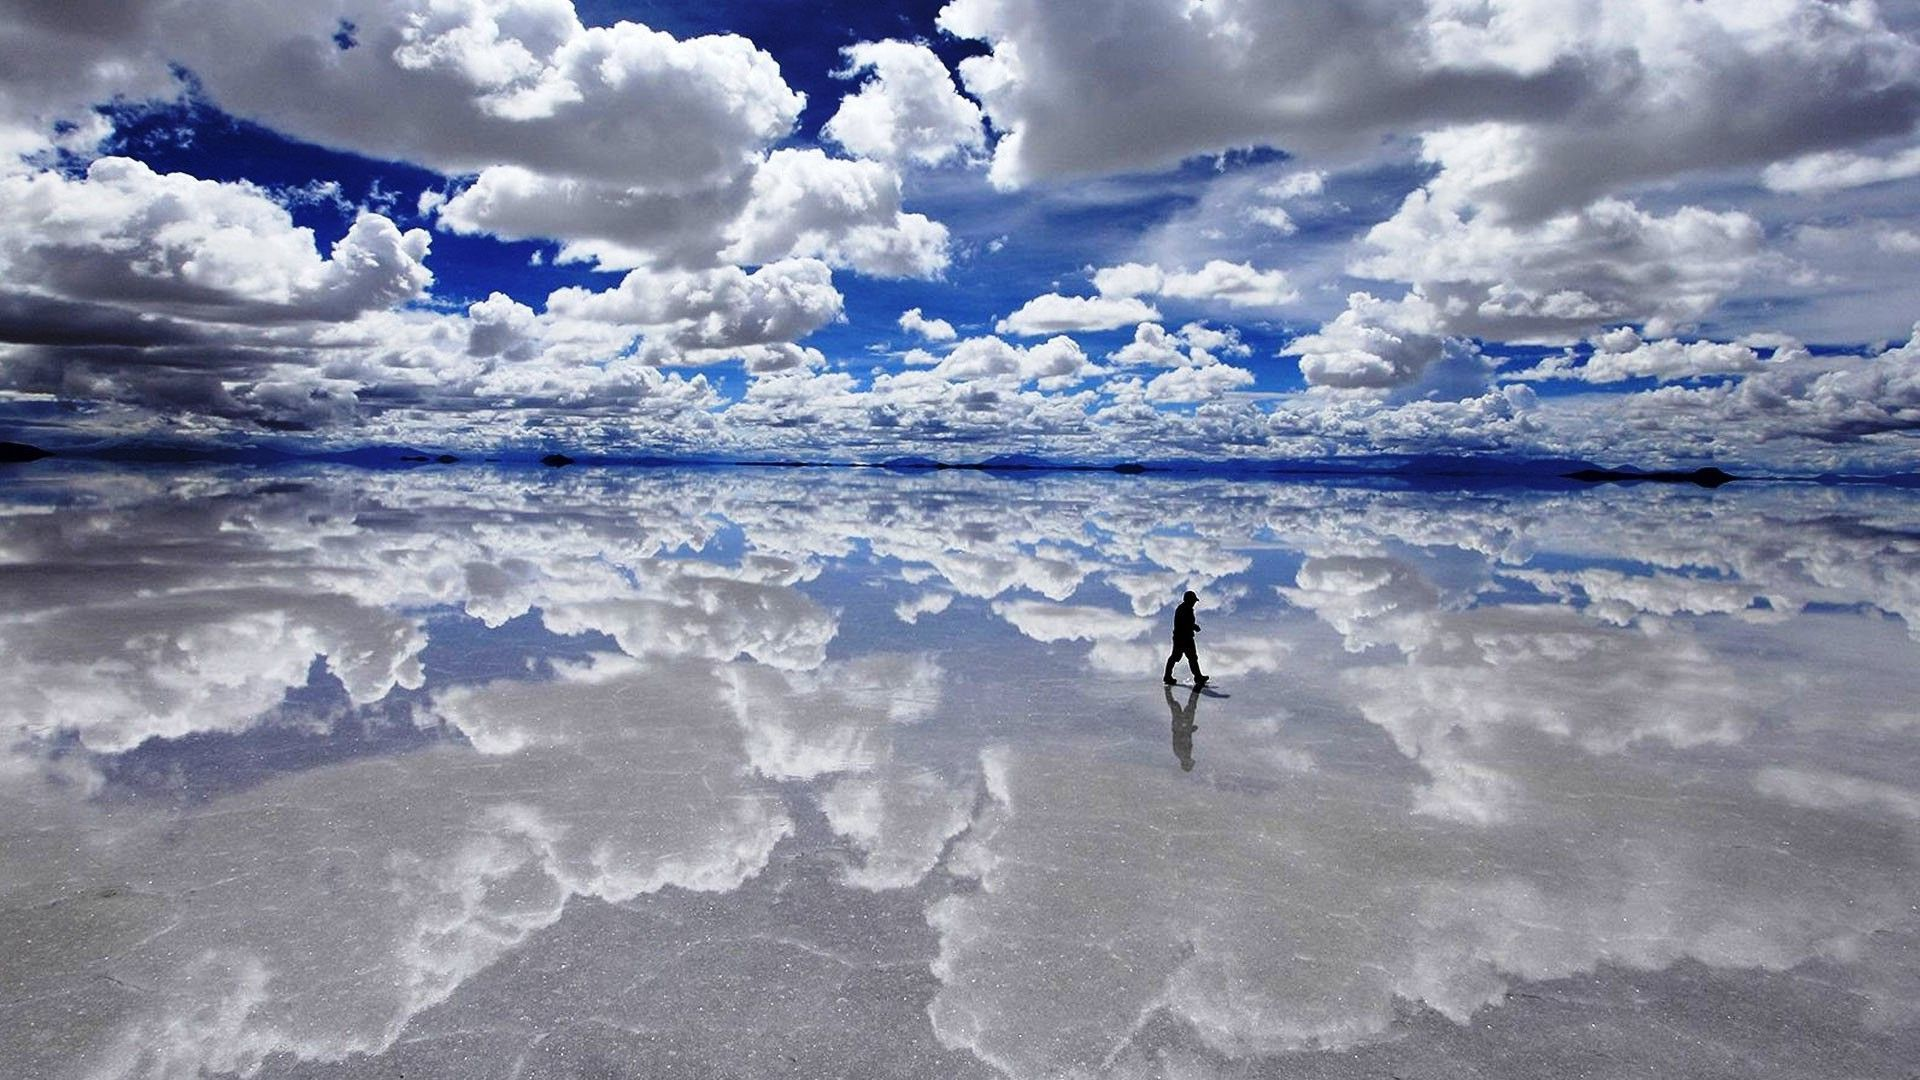 Salar De Uyuni Bolivia Viral Prompt Breathtaking Places Nature Photos Places To See